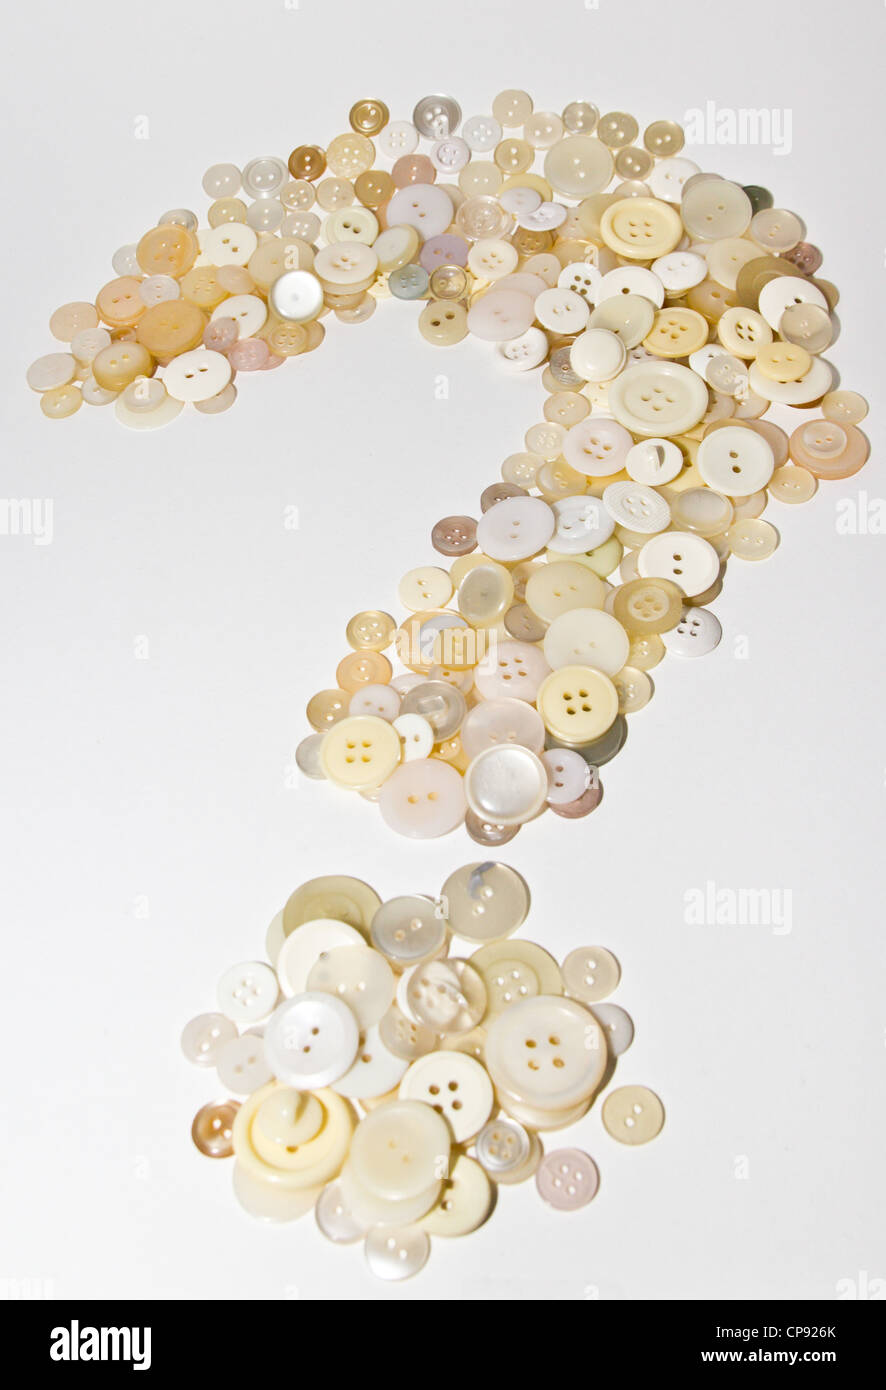 question mark made of buttons - Stock Image